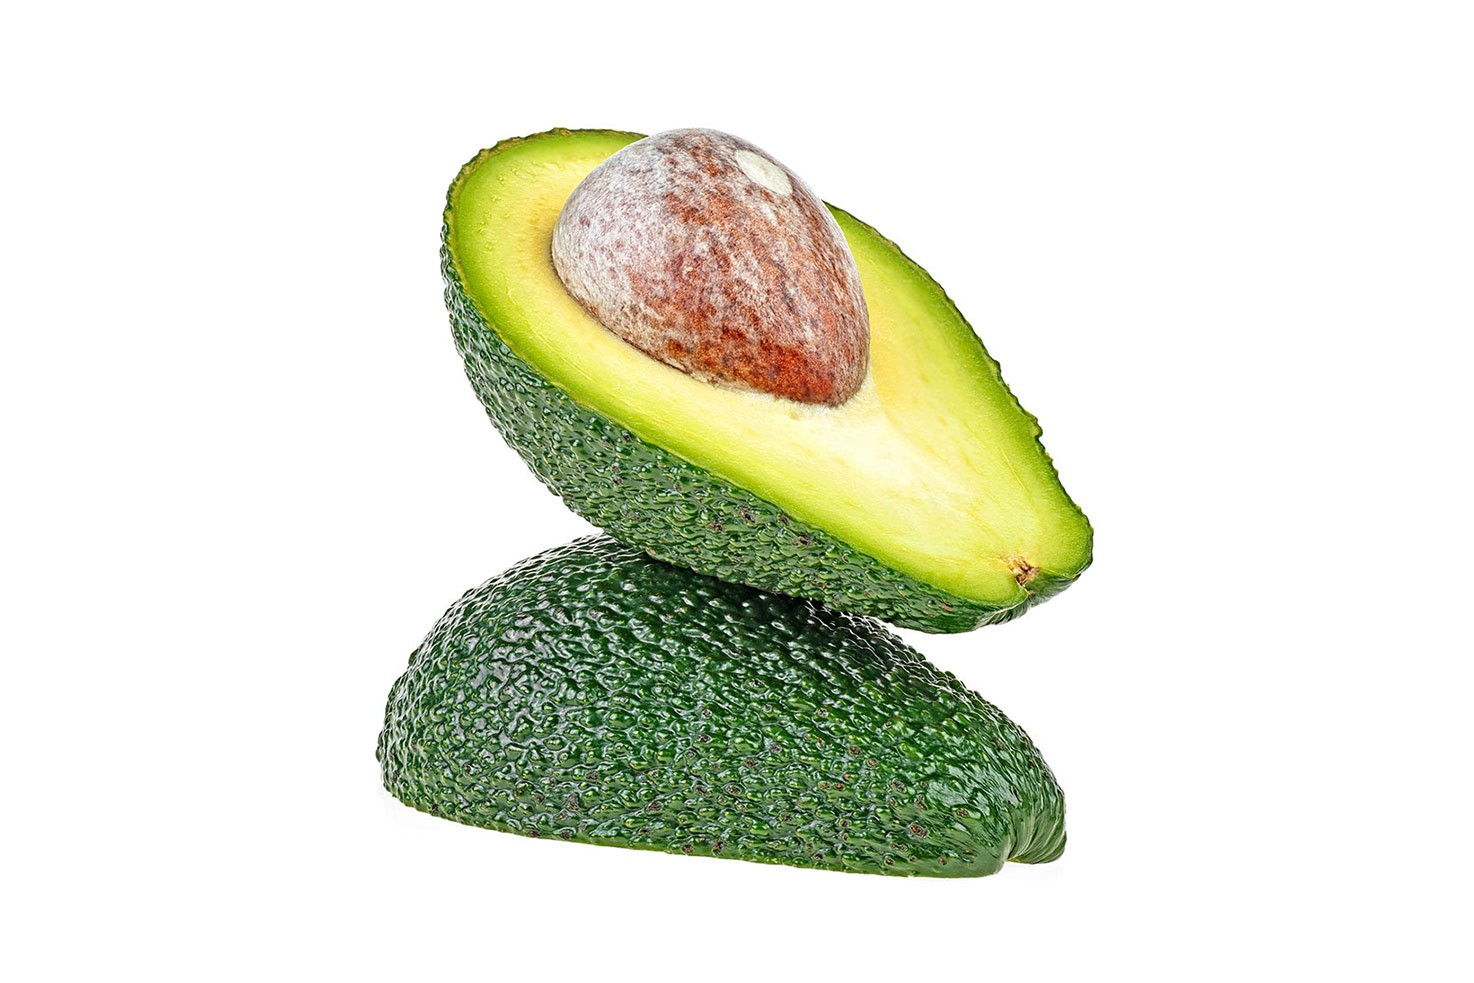 Two halves of avocado | Hurry The Food Up